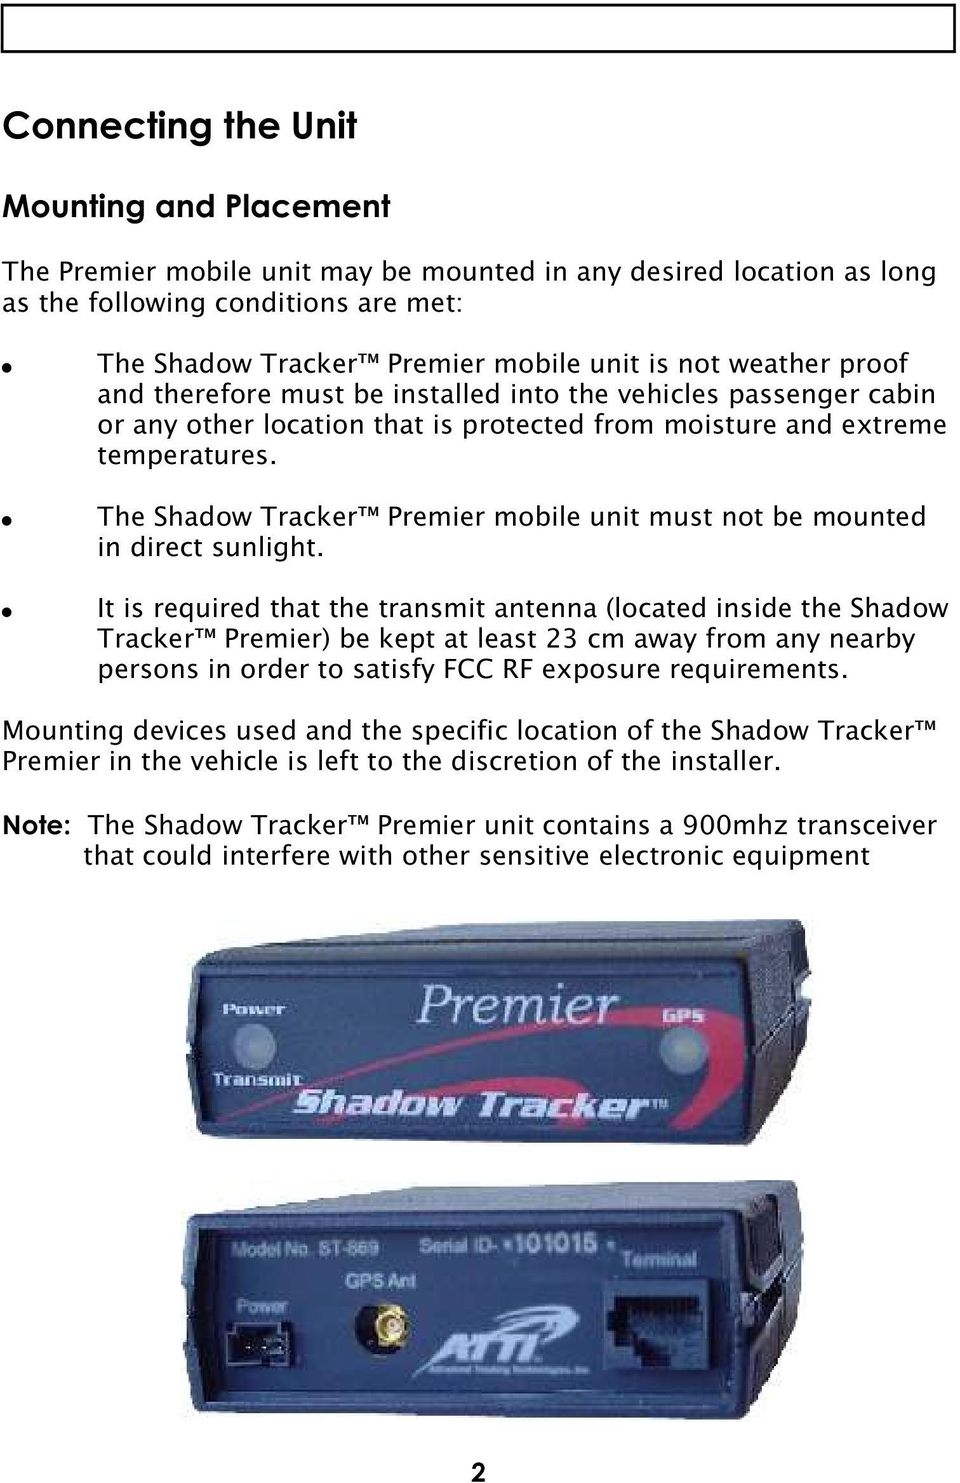 The Shadow Tracker Premier mobile unit must not be mounted in direct sunlight.